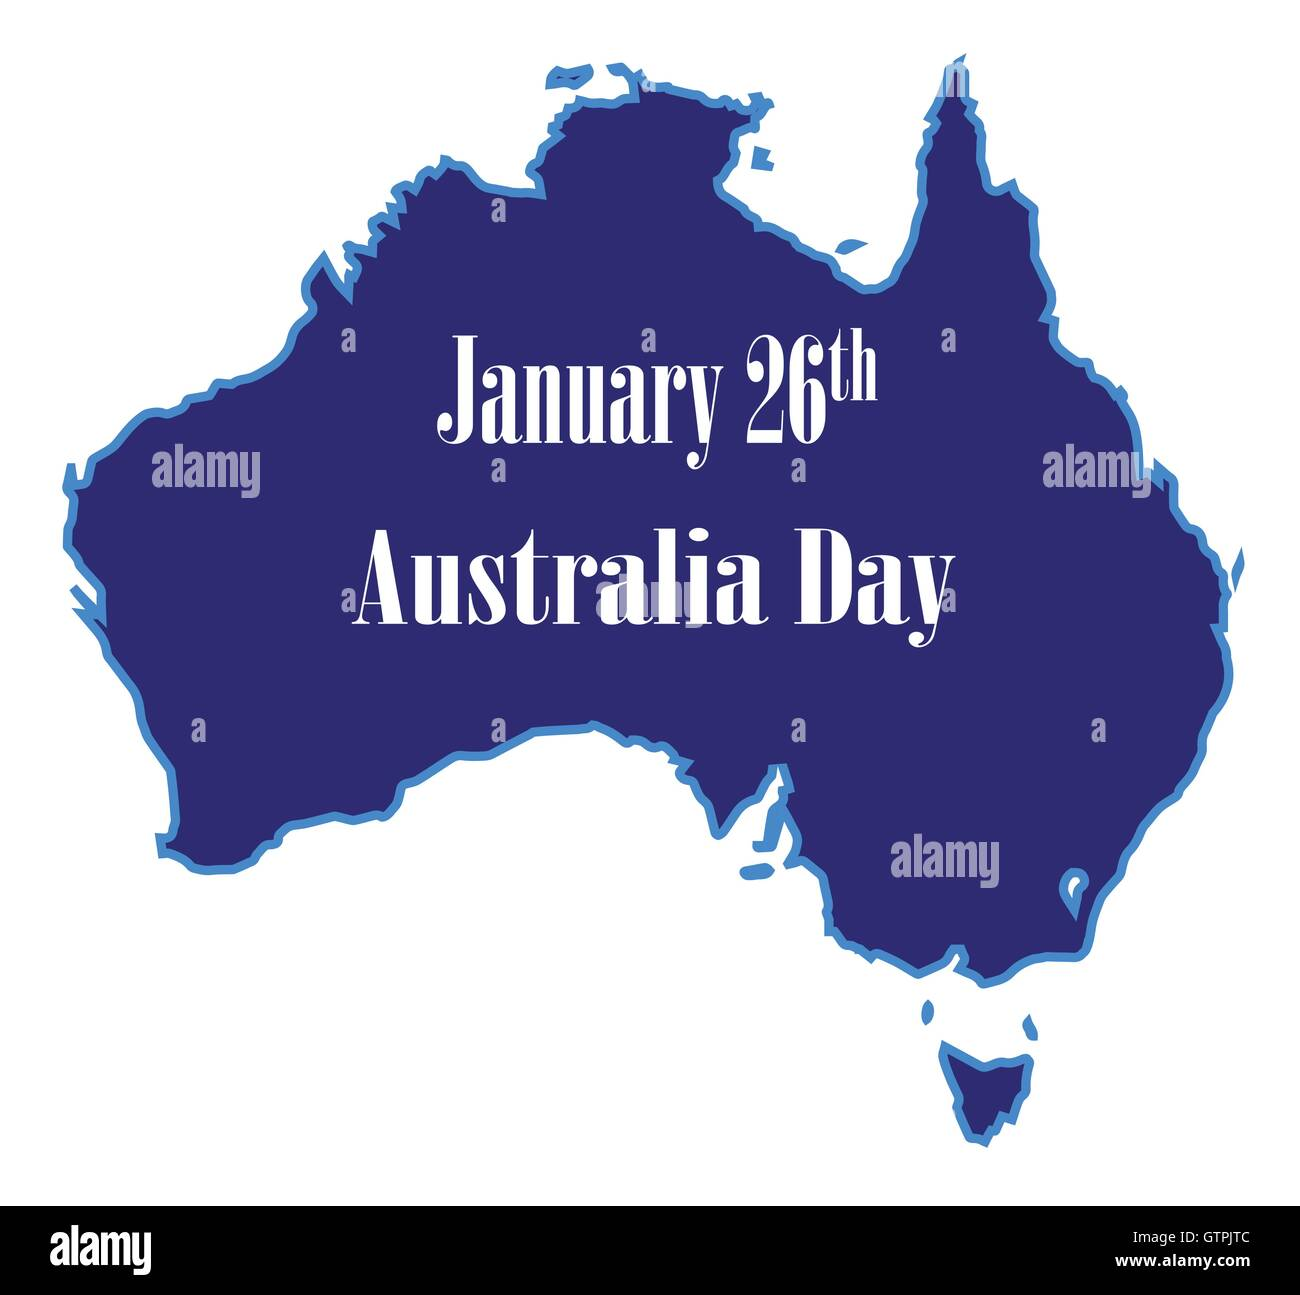 Map Of Australia 26th Parallel.Outline Map Of Australia Over A White Background And Australia Date